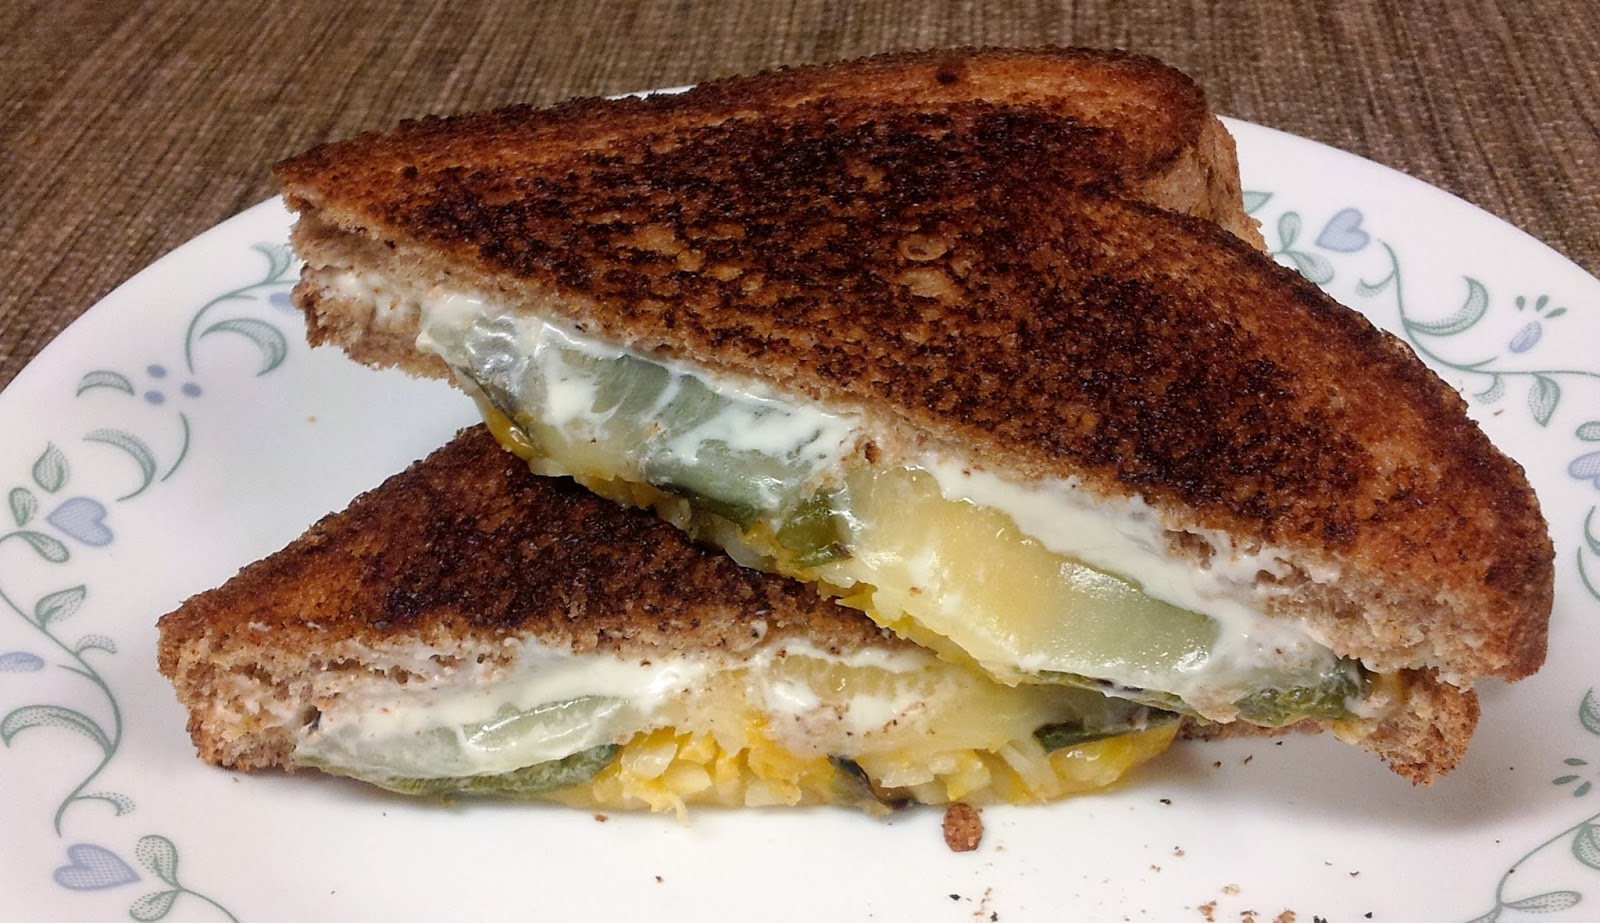 ... ... Healthy & Low Calorie: Jalapeno Popper Grilled Cheese Sandwich